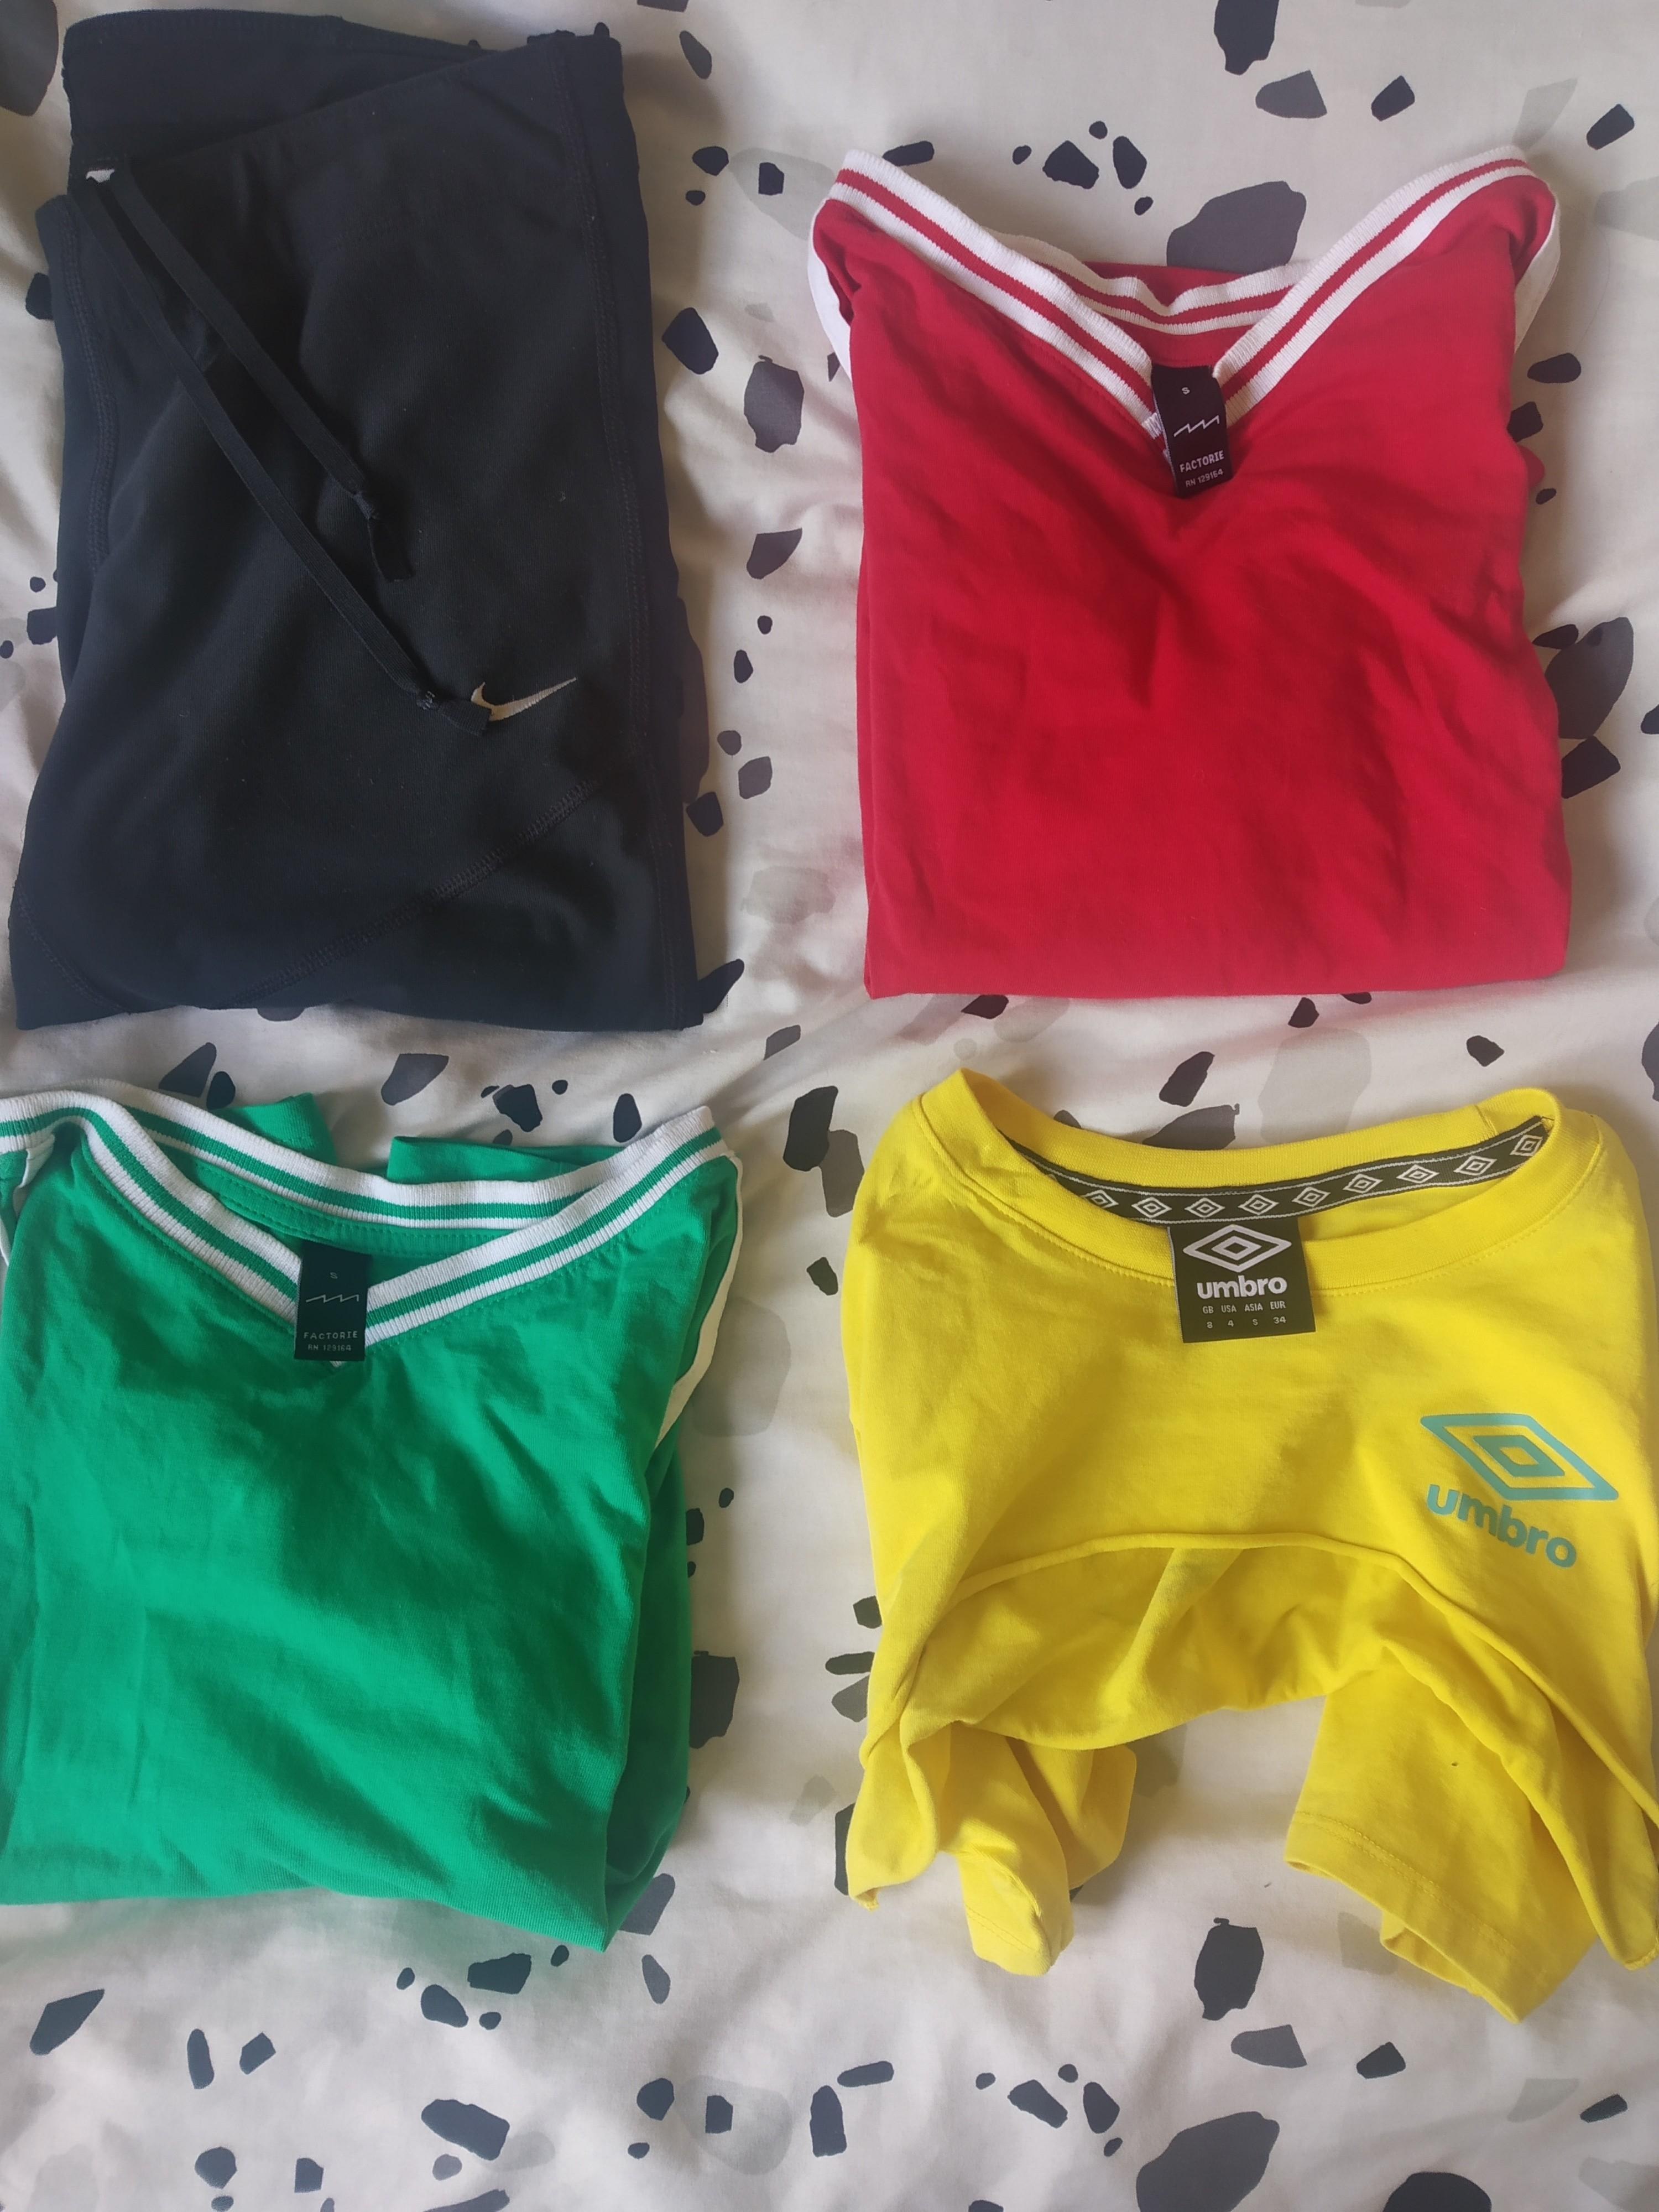 SPORTS BULK PACK (contains Nike, Umbro and Factorie)